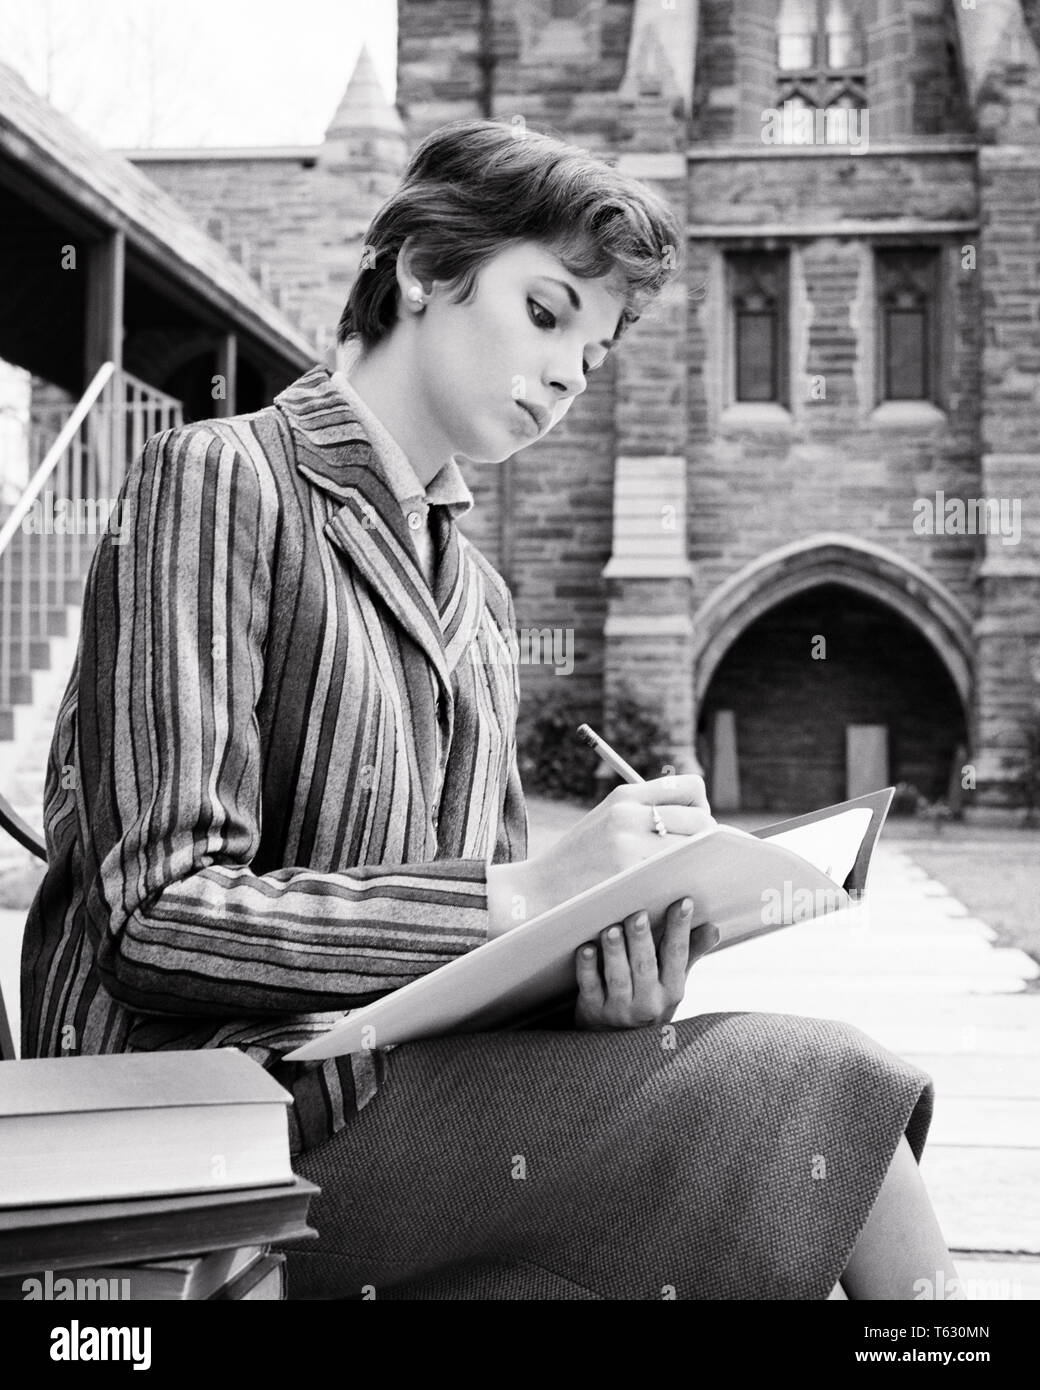 1950s 1960s SERIOUS YOUNG WOMAN COLLEGE COED SITTING ON CAMPUS WRITING IN NOTEBOOK WEARING STRIPED JACKET - s8305 HAR001 HARS FEMALES STRIPED COPY SPACE HALF-LENGTH LADIES PERSONS B&W BRUNETTE GOALS STYLES UNIVERSITIES KNOWLEDGE LOW ANGLE IN ON OPPORTUNITY HIGHER EDUCATION STYLISH COLLEGES COED FASHIONS FOCUSED GROWTH YOUNG ADULT WOMAN BLACK AND WHITE CAUCASIAN ETHNICITY CONCENTRATION HAR001 OLD FASHIONED SHORT HAIR - Stock Image